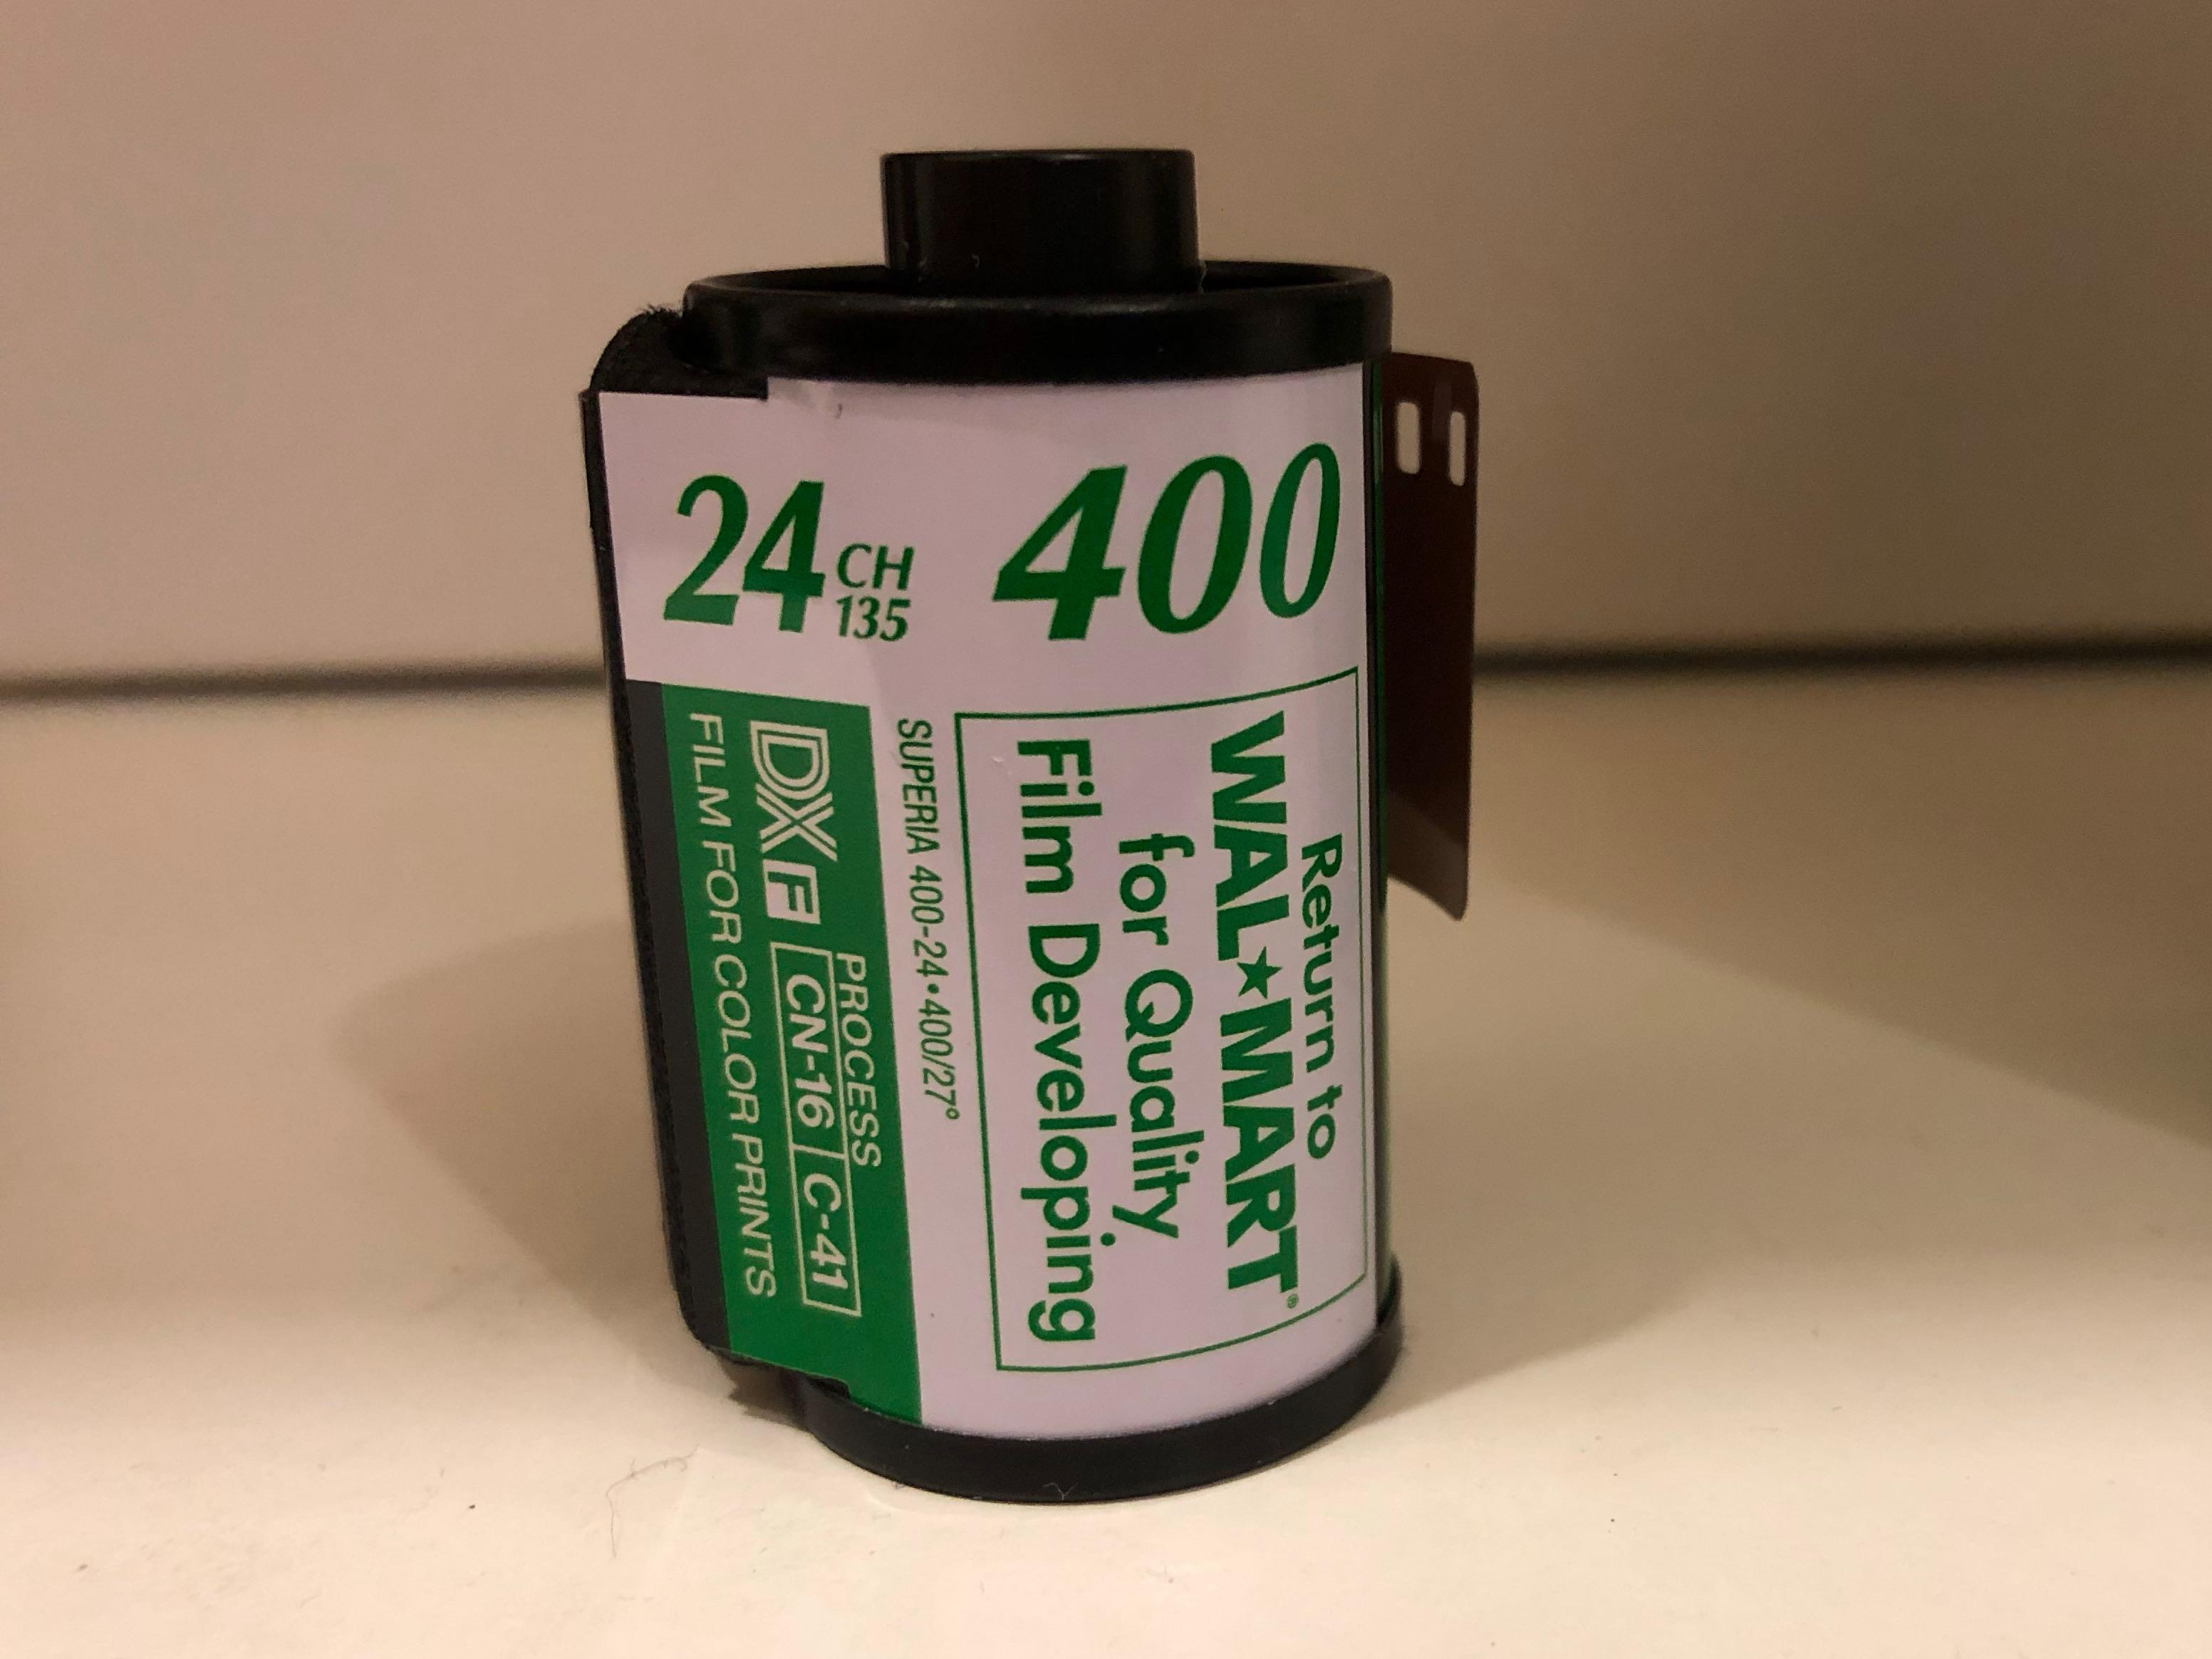 Fujifilm expired 35mm film, Photography, Camera Accessories